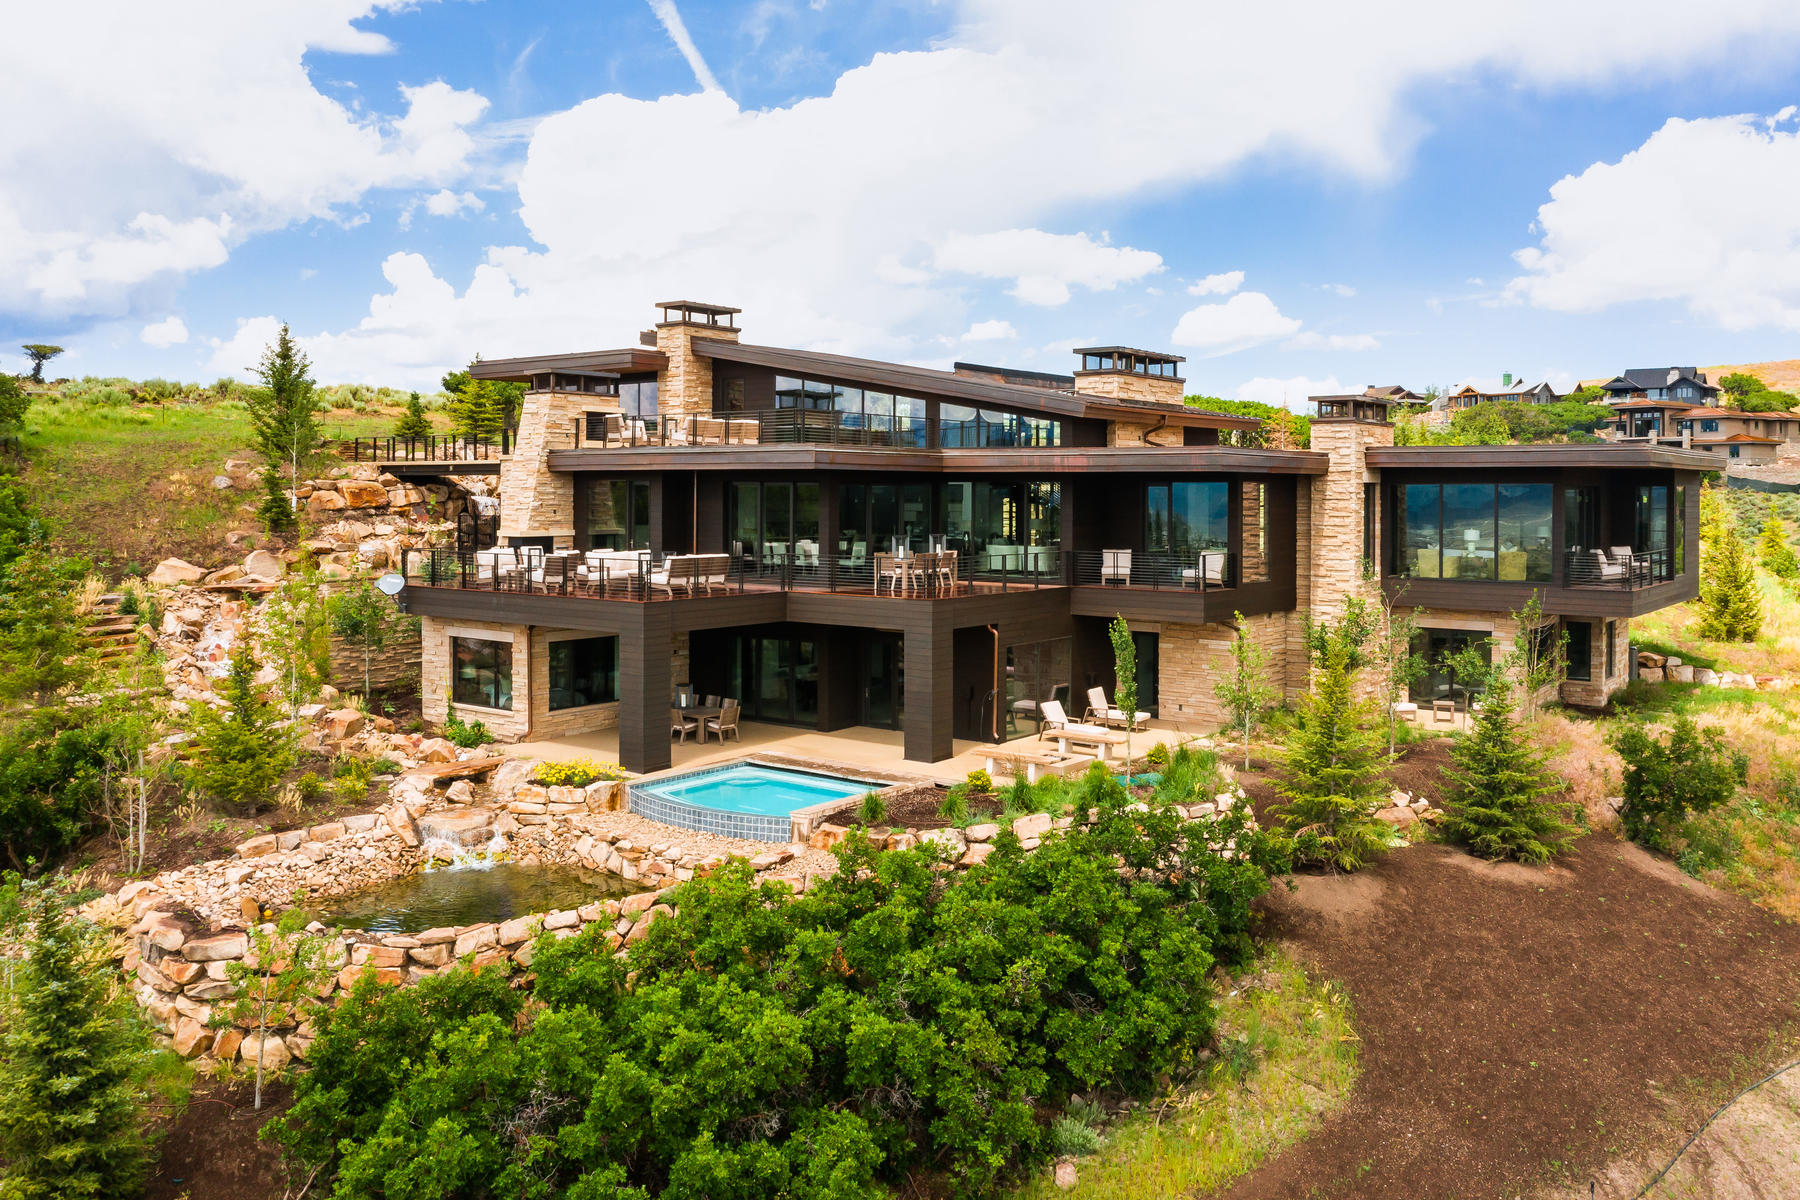 Single Family Homes for Active at Stunning Upwall Family Retreat! 8785 N Lookout Lane Park City, Utah 84098 United States